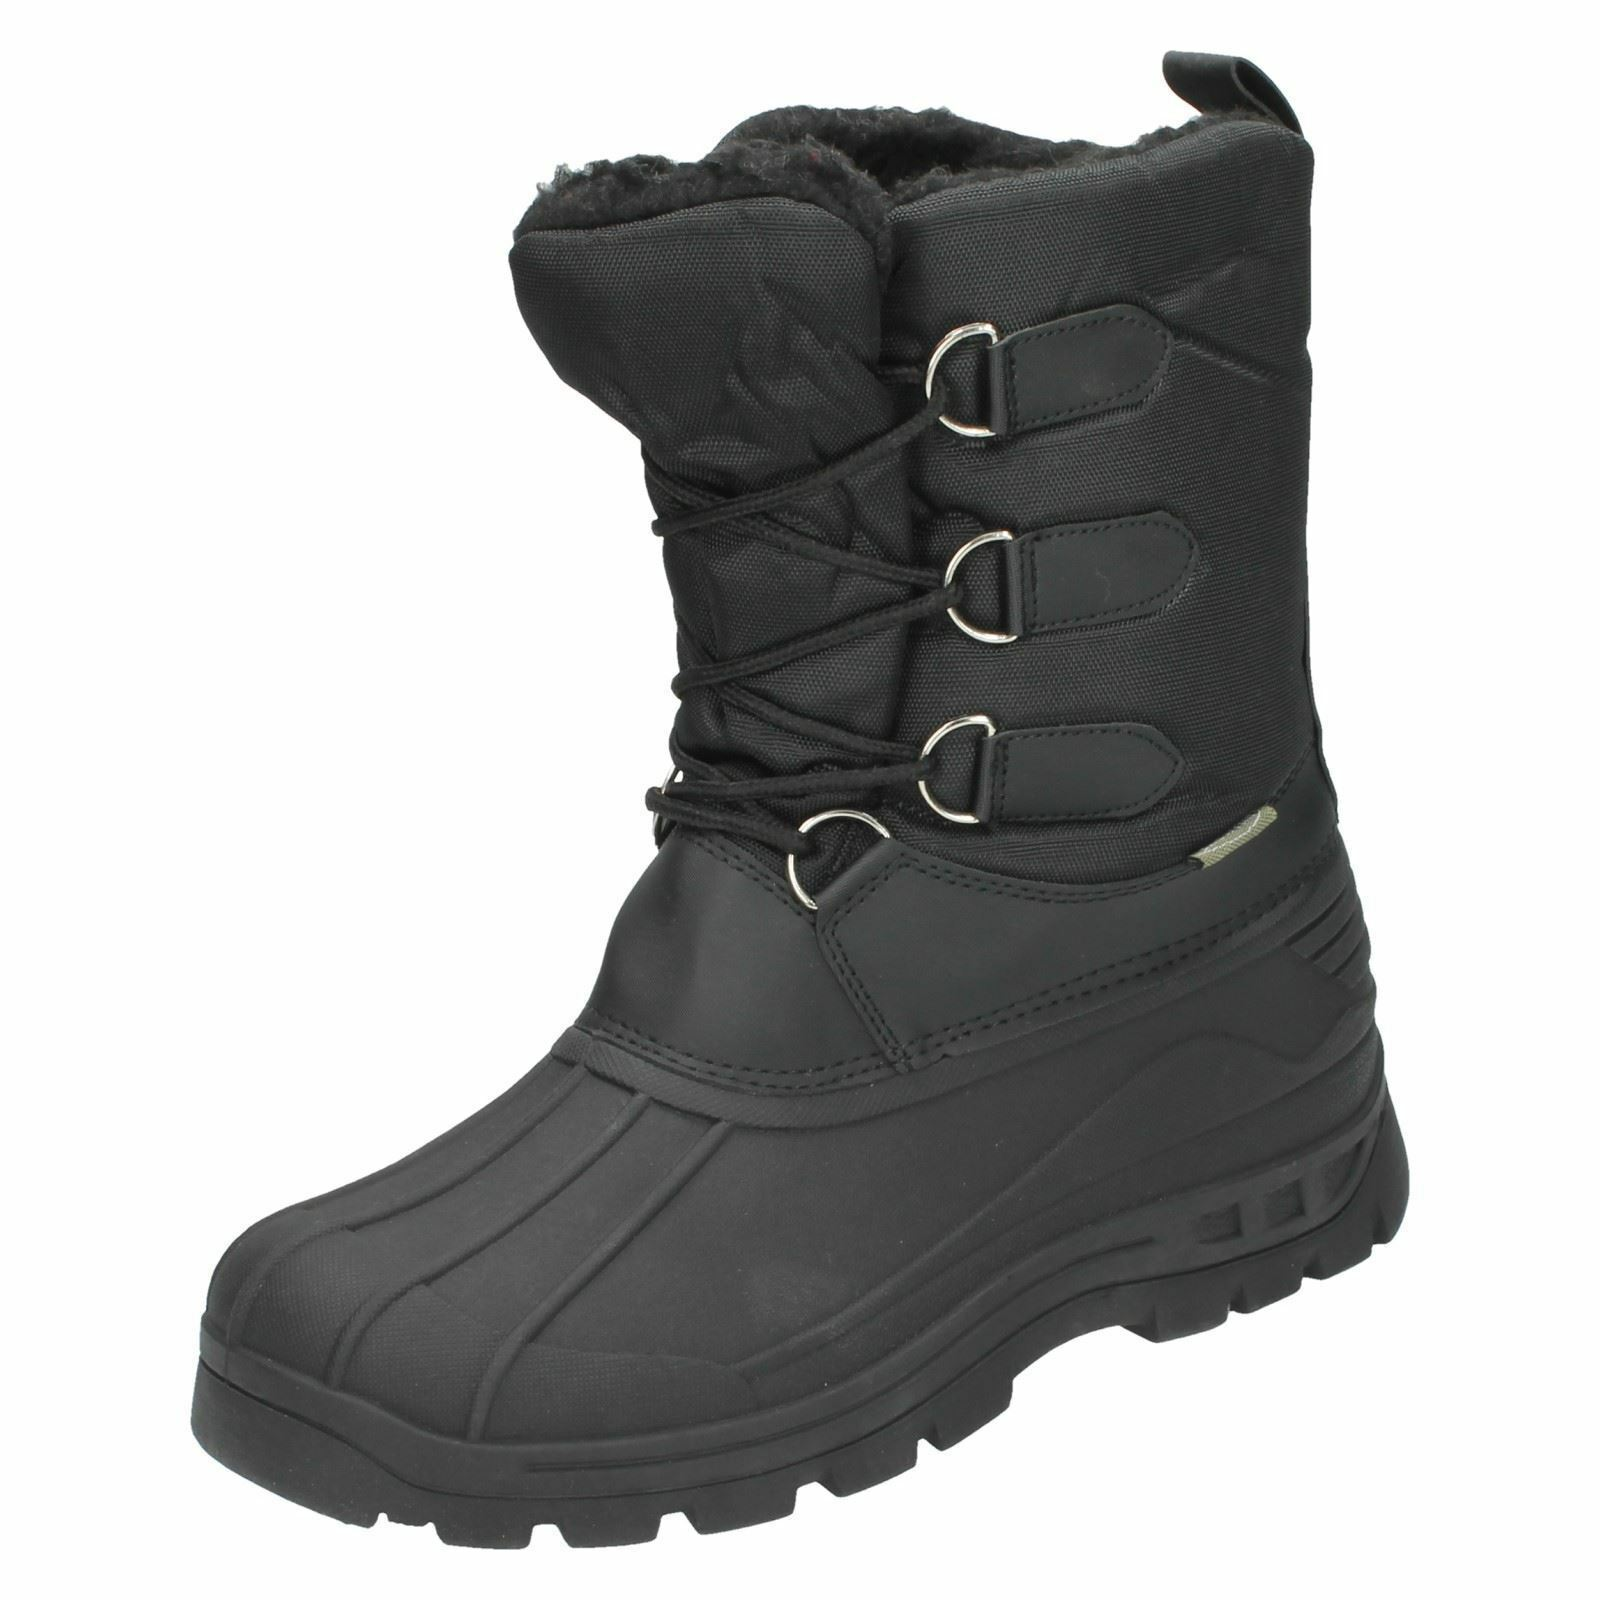 Ladies 8.562304A Black Nylon Lace Up Boots By Snow Fun £19.99